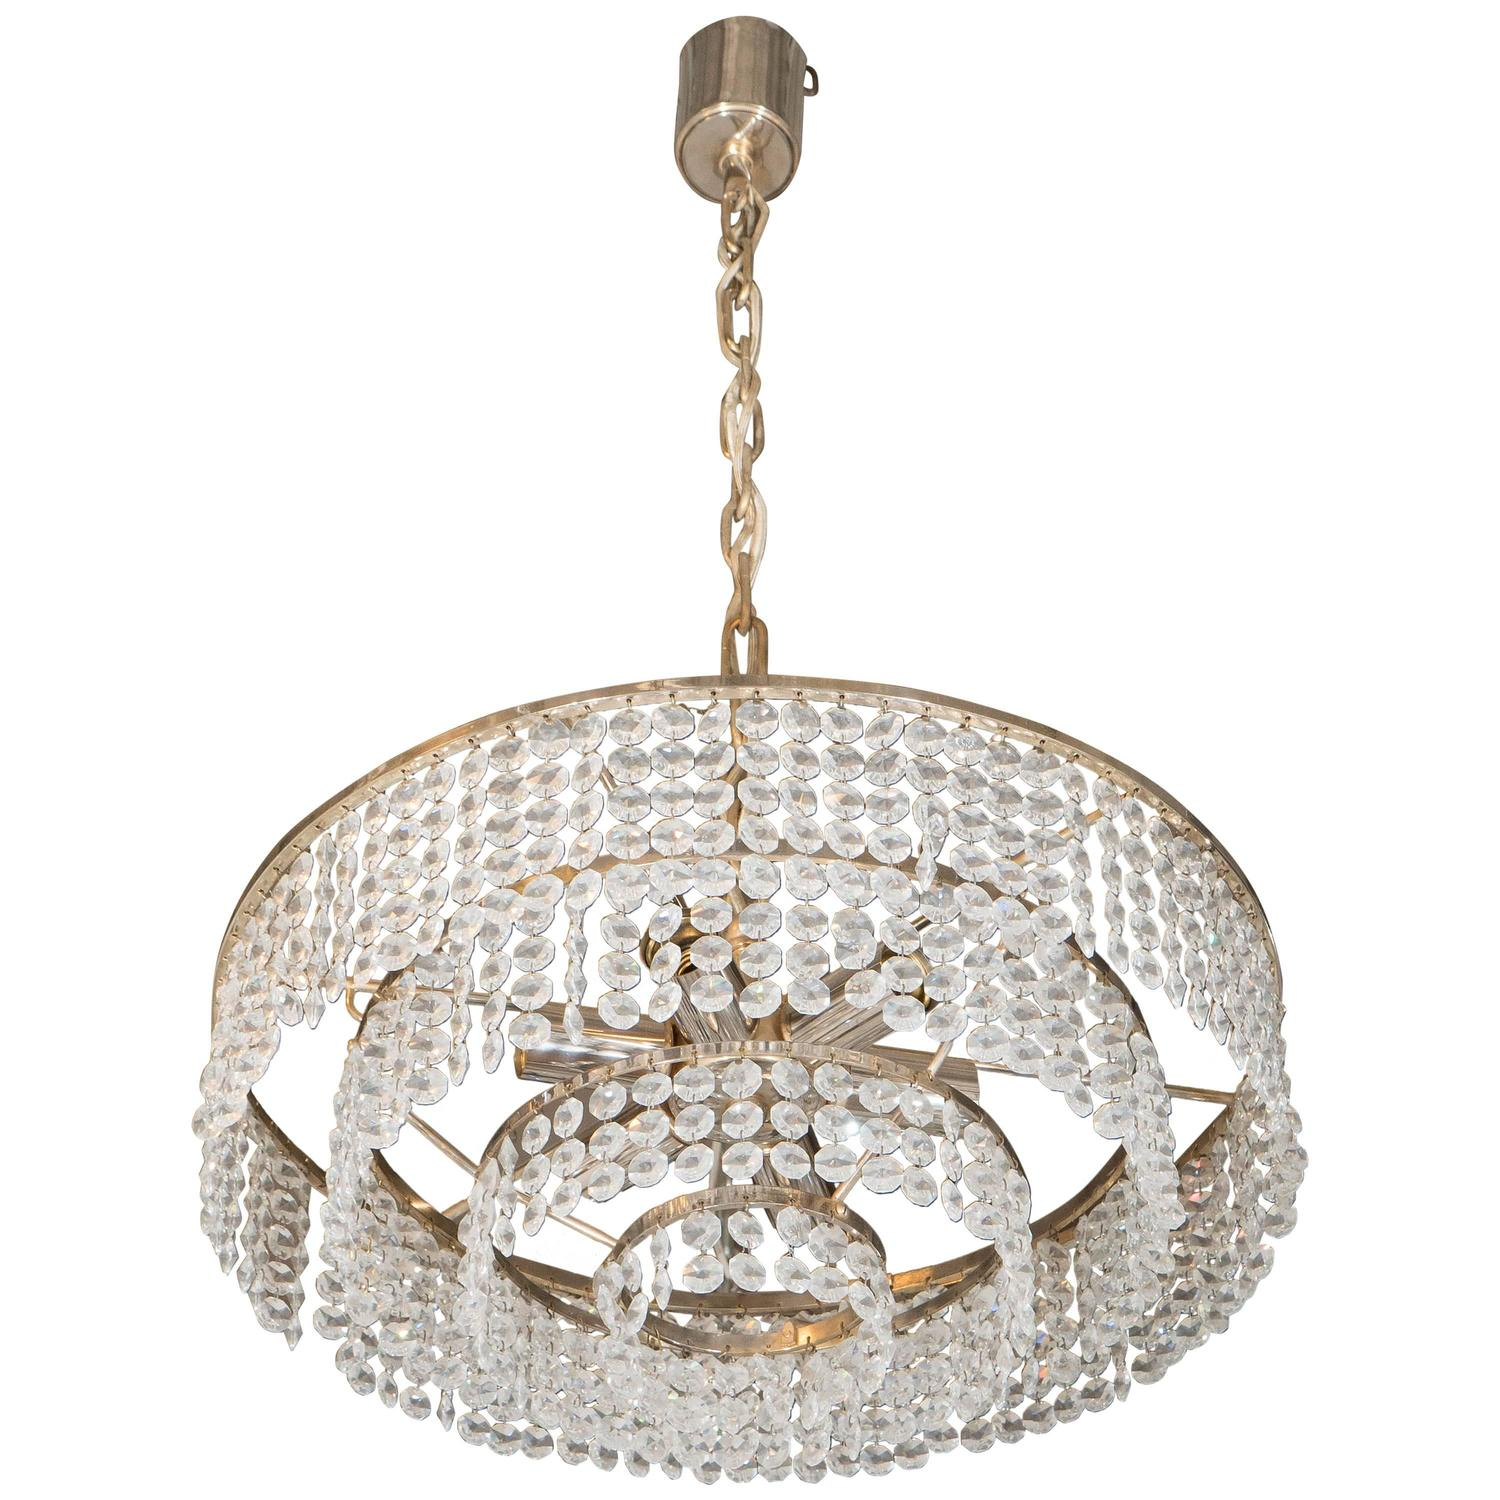 Glass Chandelier Beads: A 1960s German Four Tier Chandelier with Faceted Glass Beads and Brass  Frame at 1stdibs,Lighting